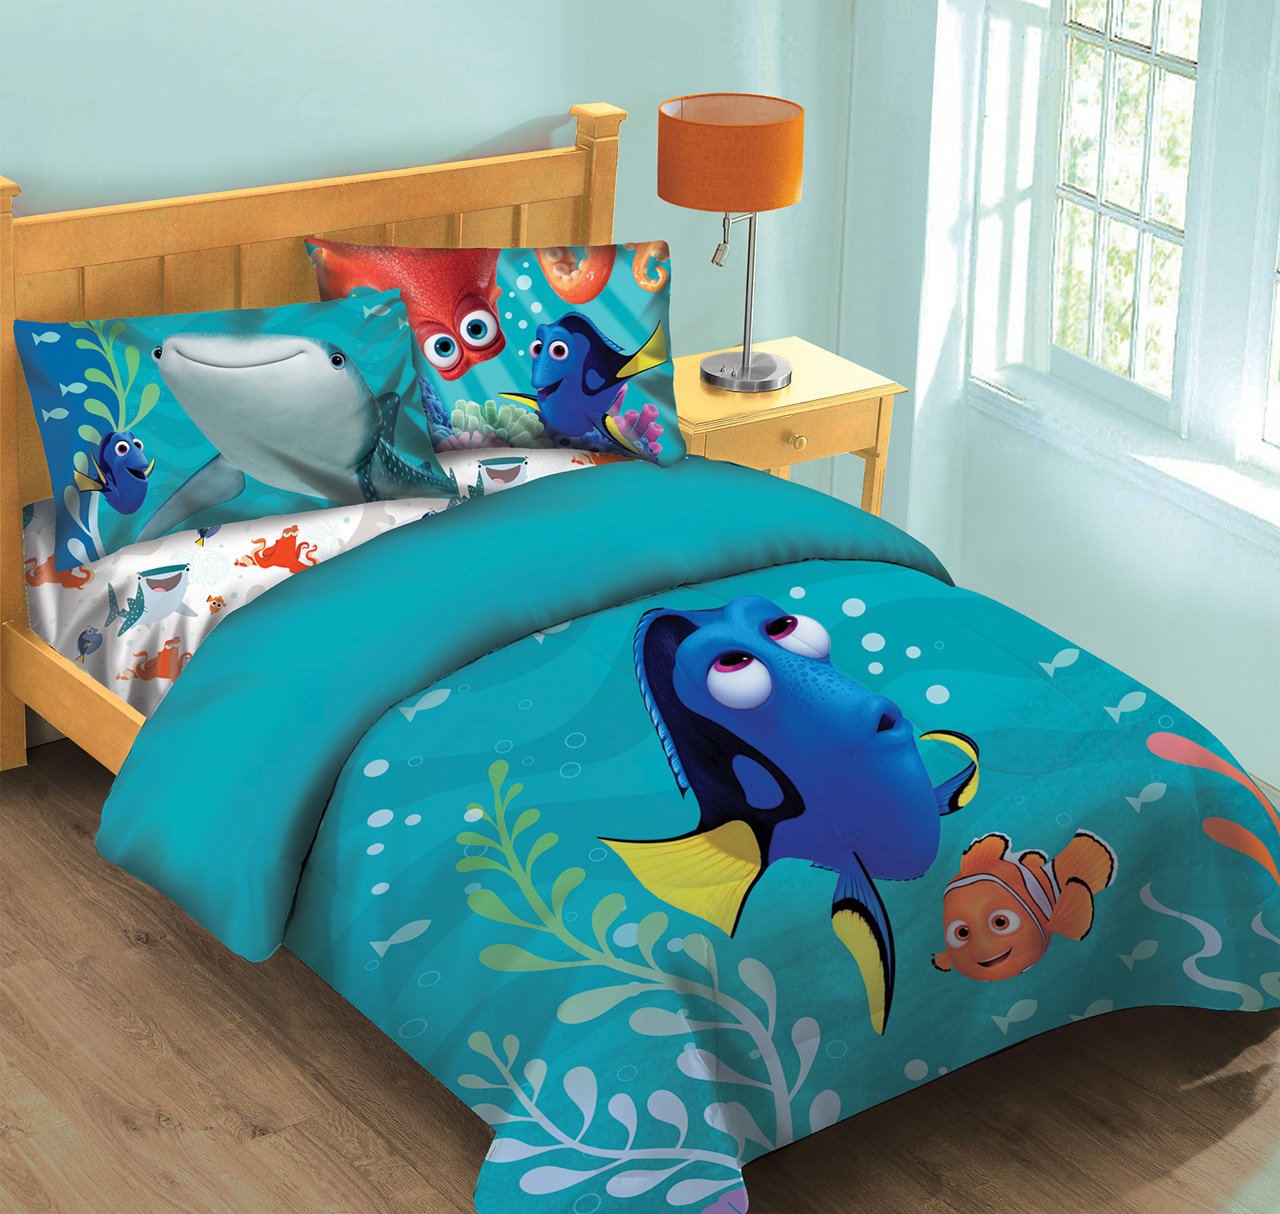 disney finding dory fish finder twin comforter set w fitted sheet walmart com